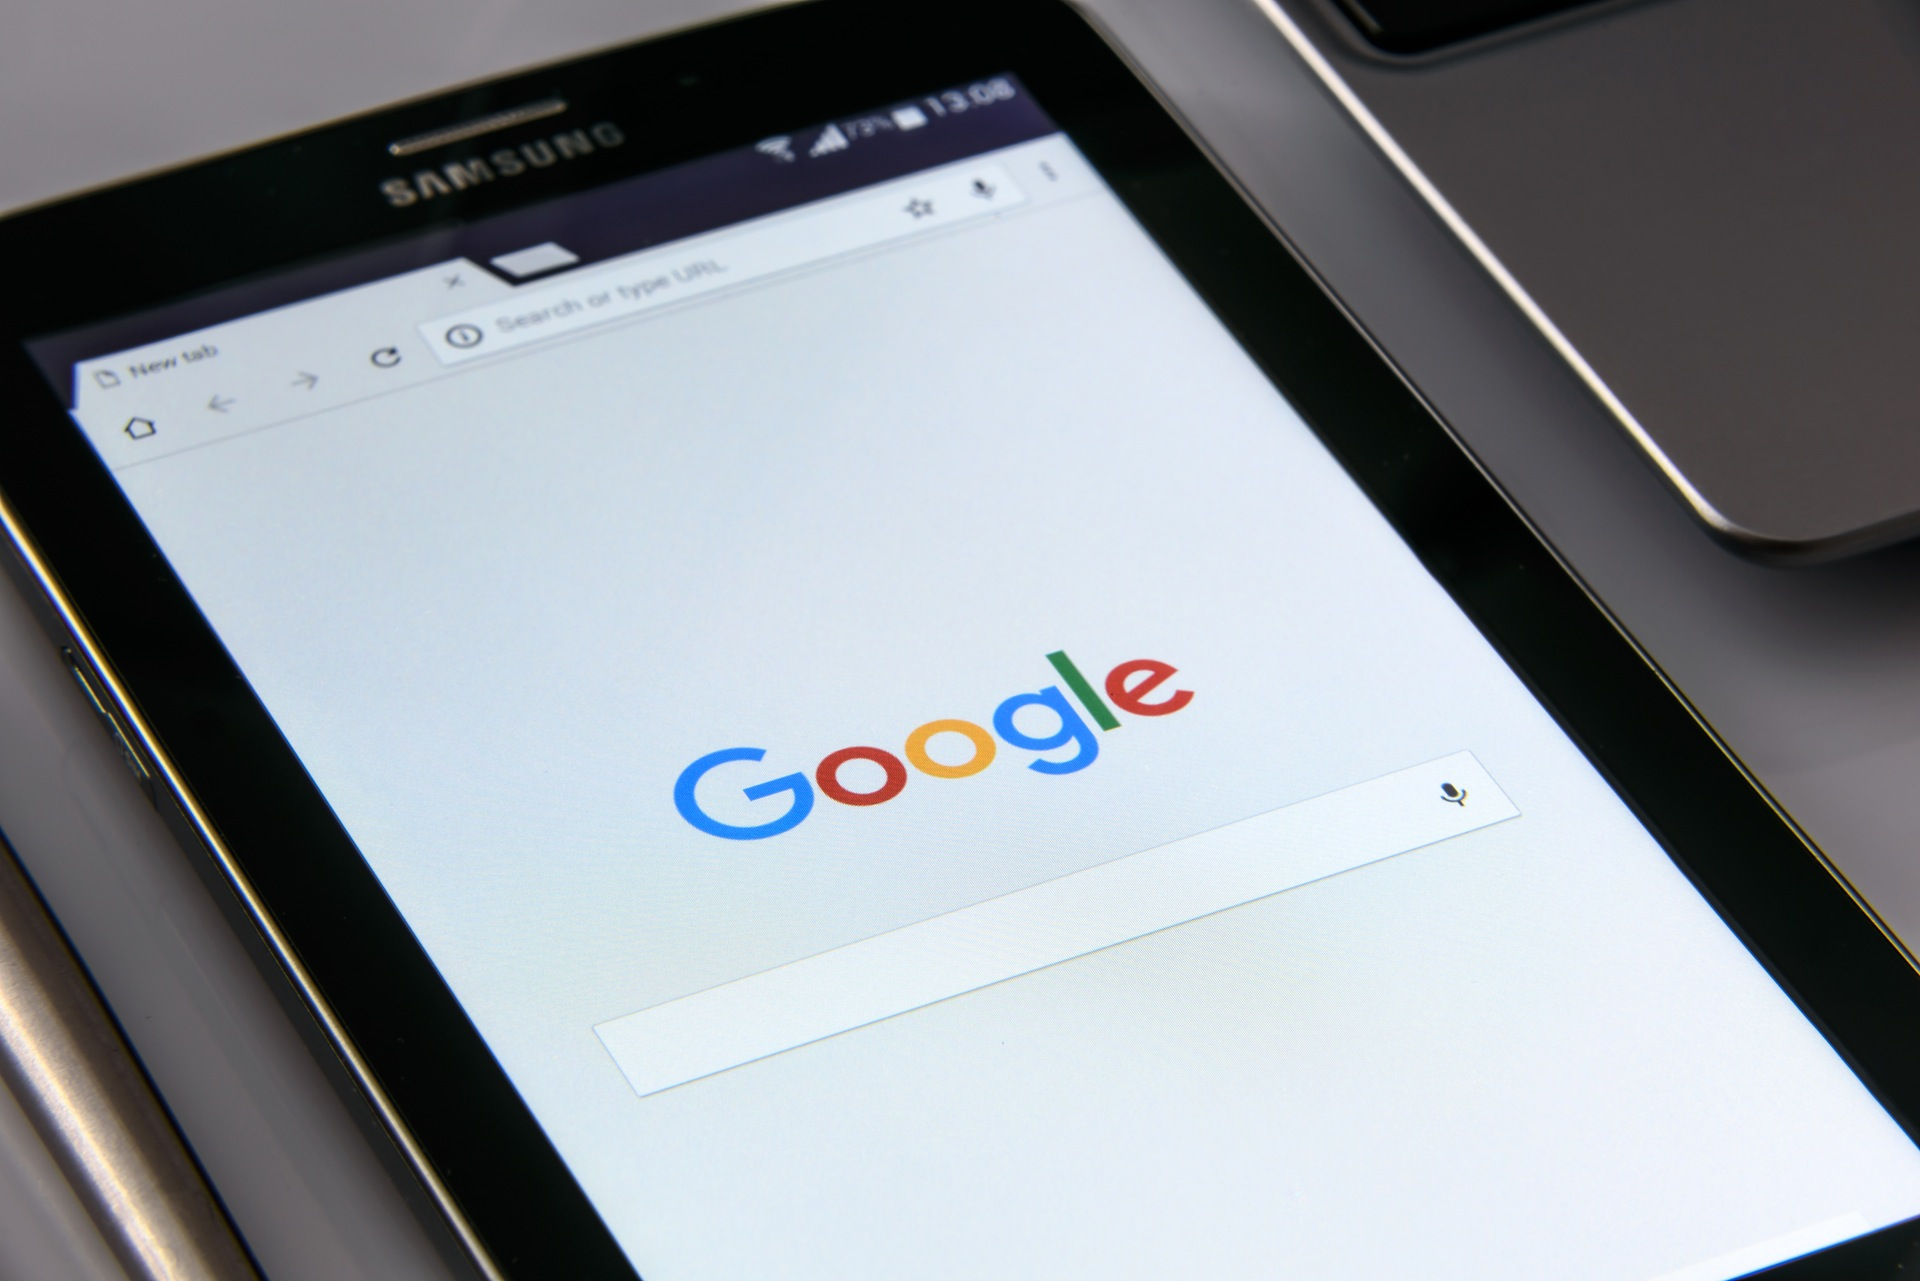 Google search open on a mobile device